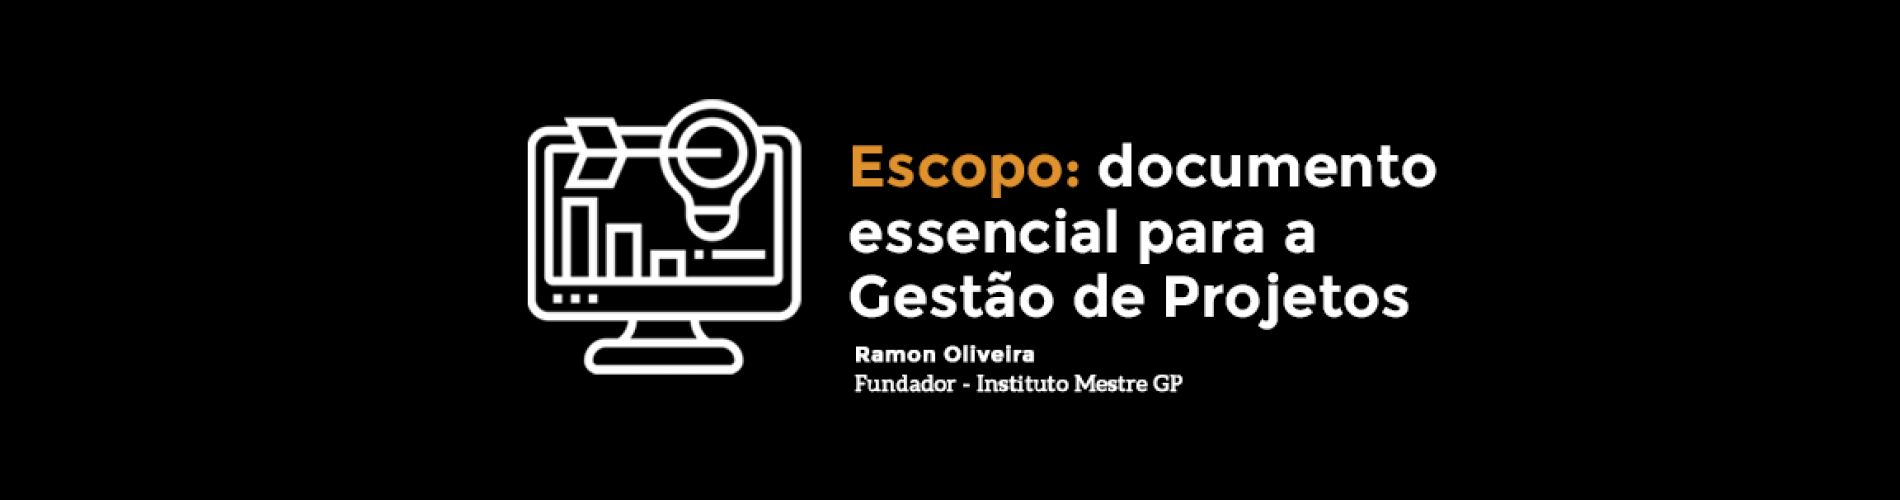 escopo-documento-essencial-para-a-gestao-de-projetos